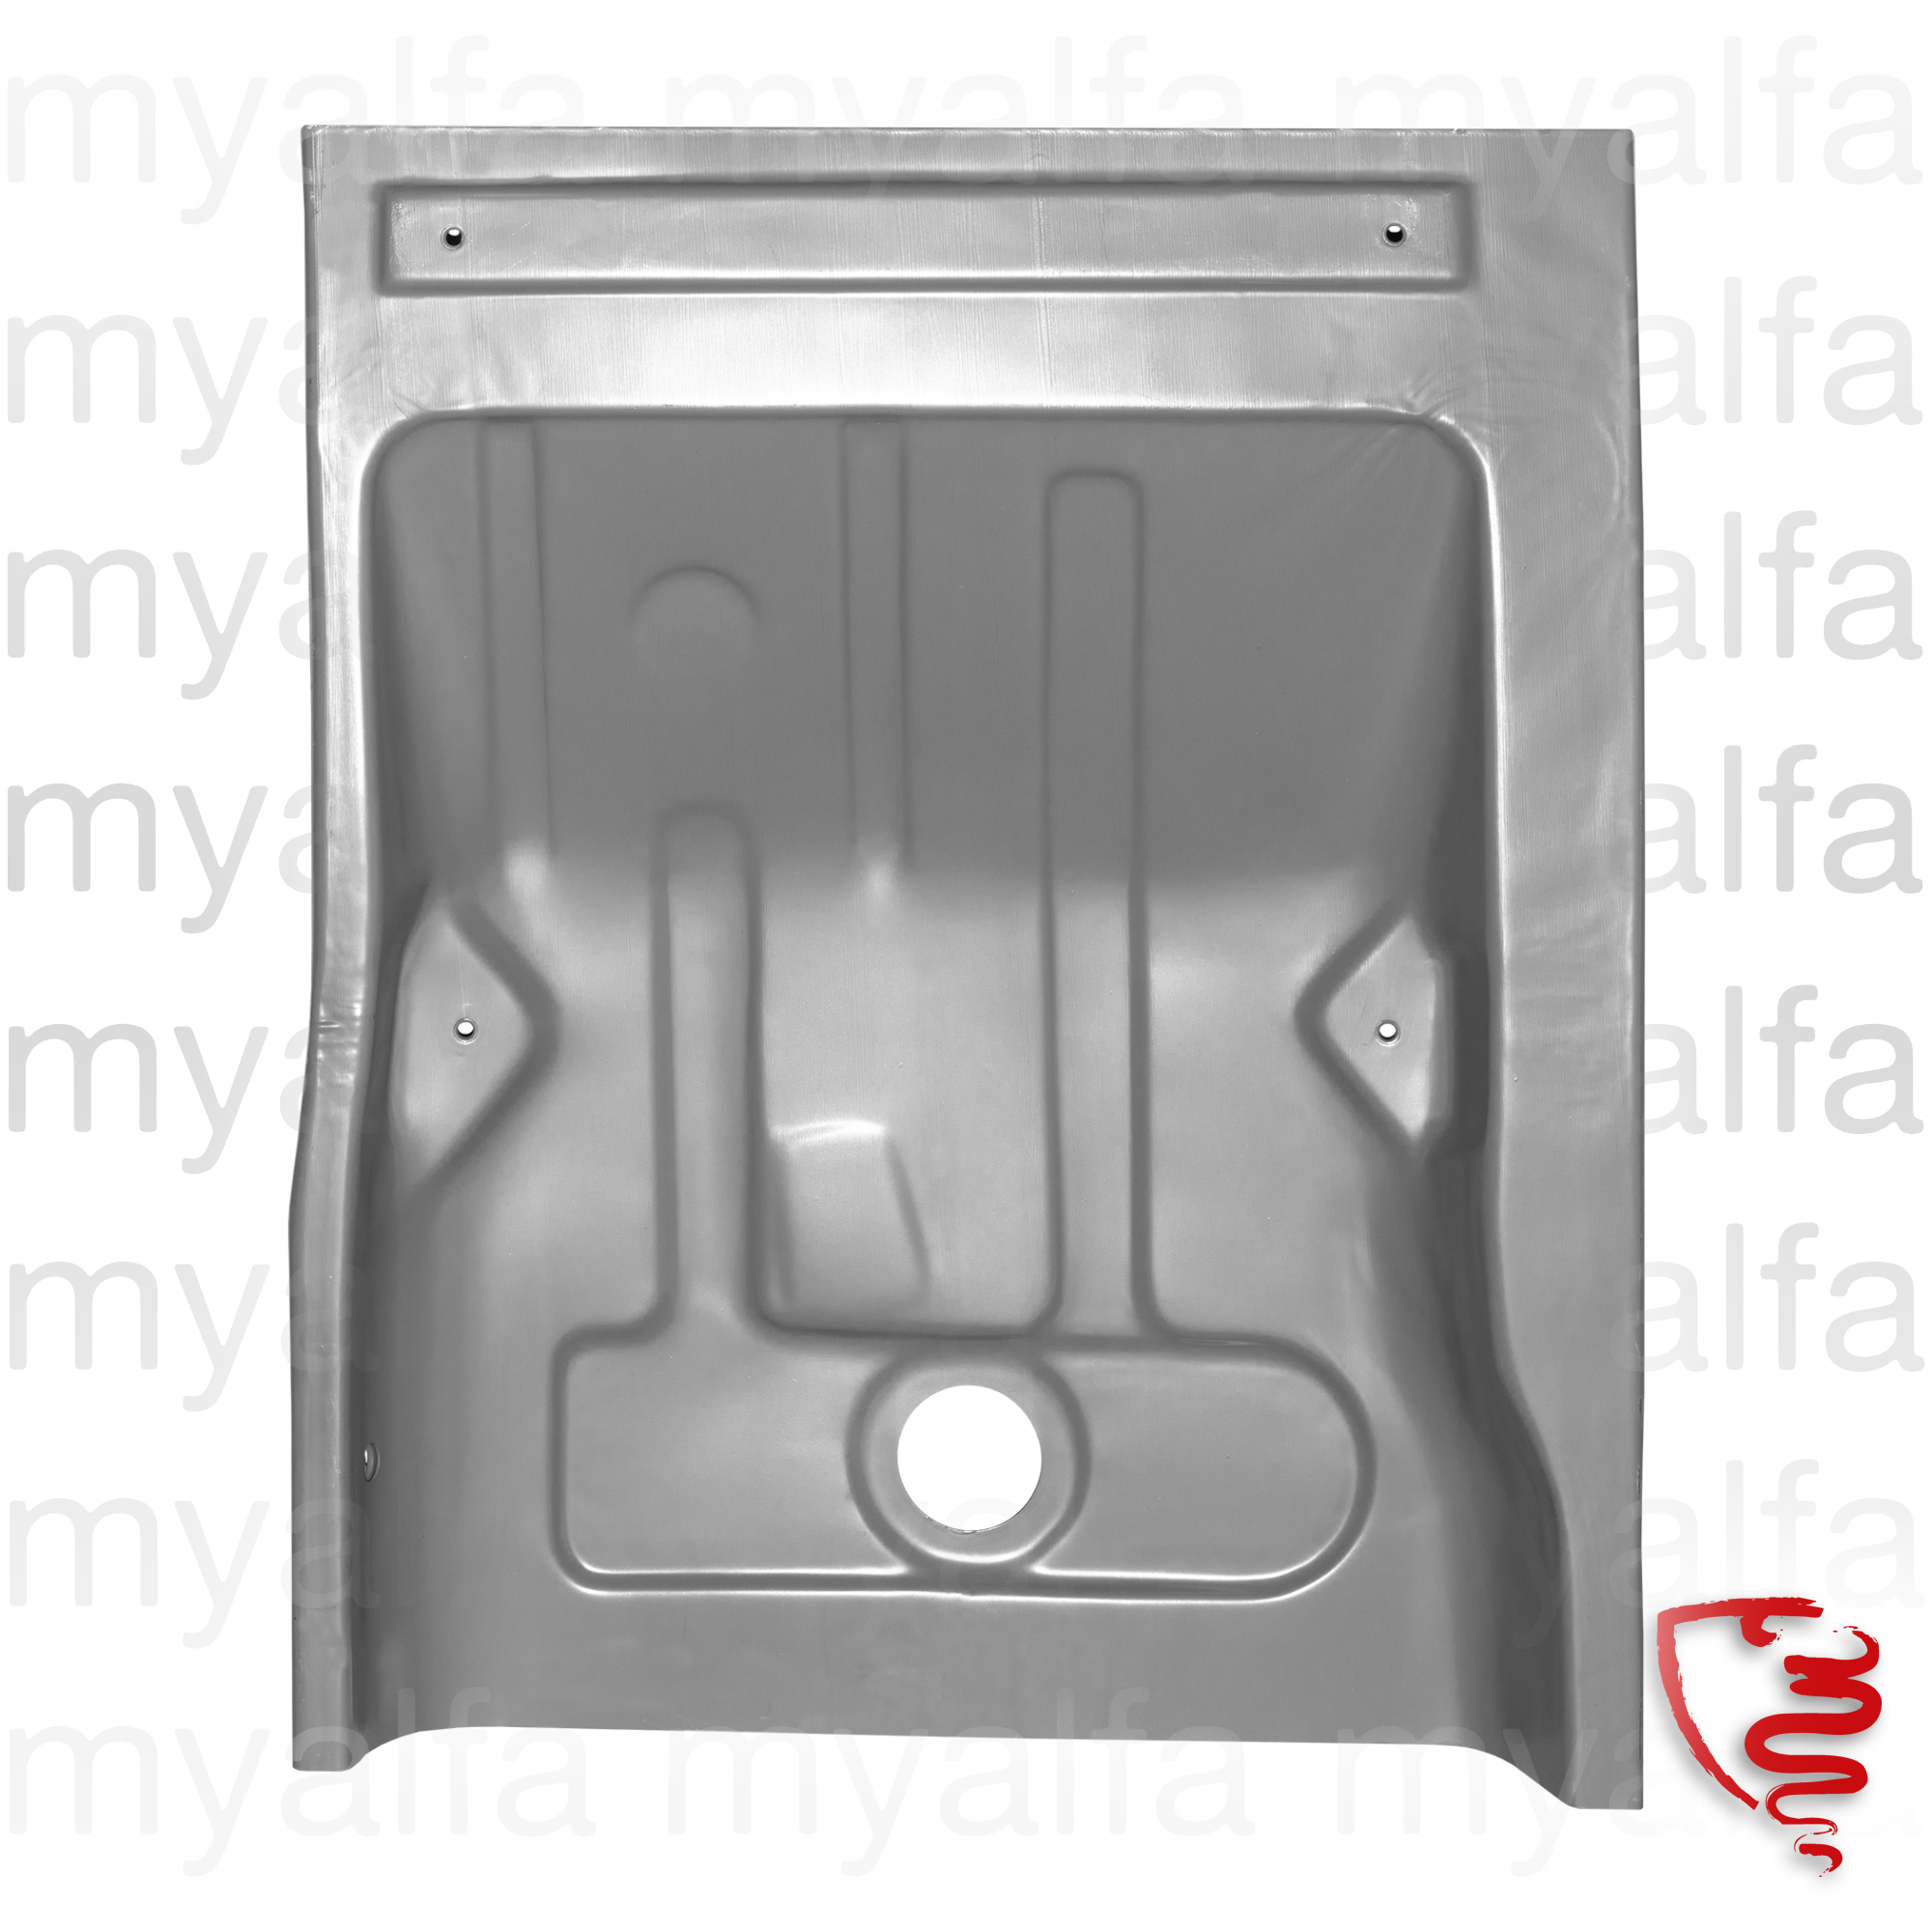 Floor panel Back Right GT Bertone for 105/115, Coupe, Body parts, Panels, Floor